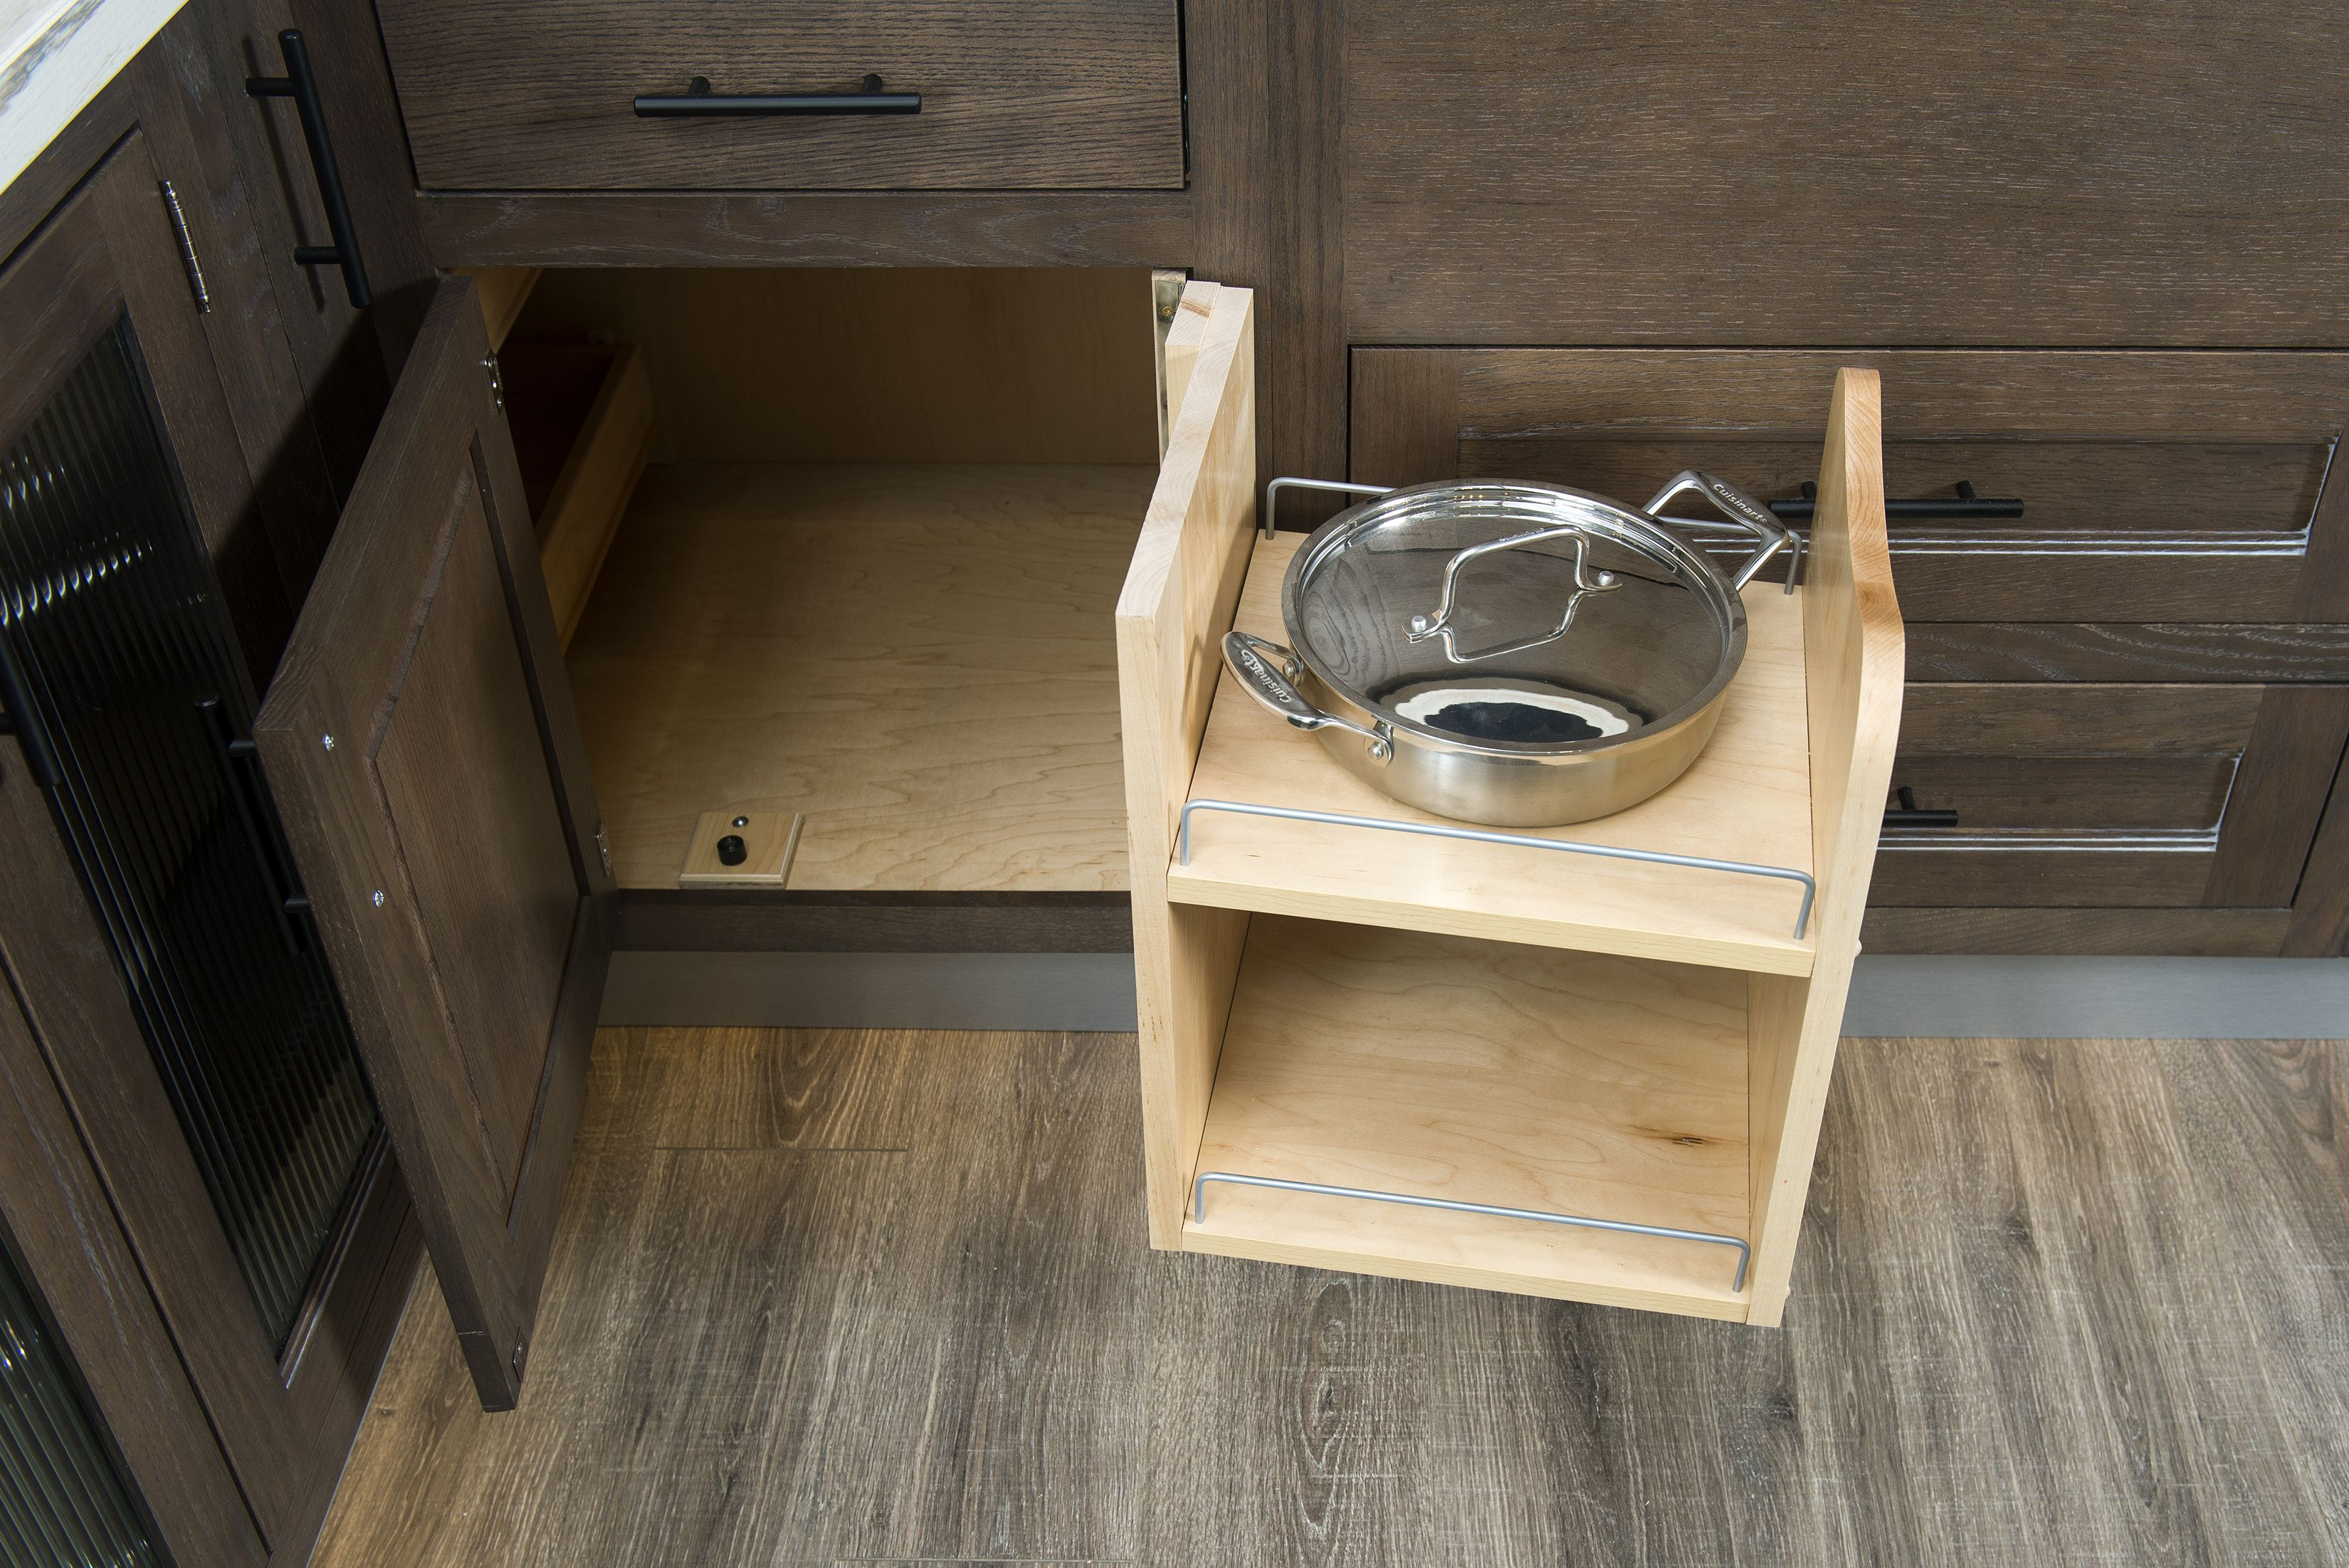 For Your Side Corner Cabinetry It Is Always Hard To Get All Your Pots And Pans Stored Back In The Corner C Pan Organization Kitchen And Bath Wellborn Cabinets